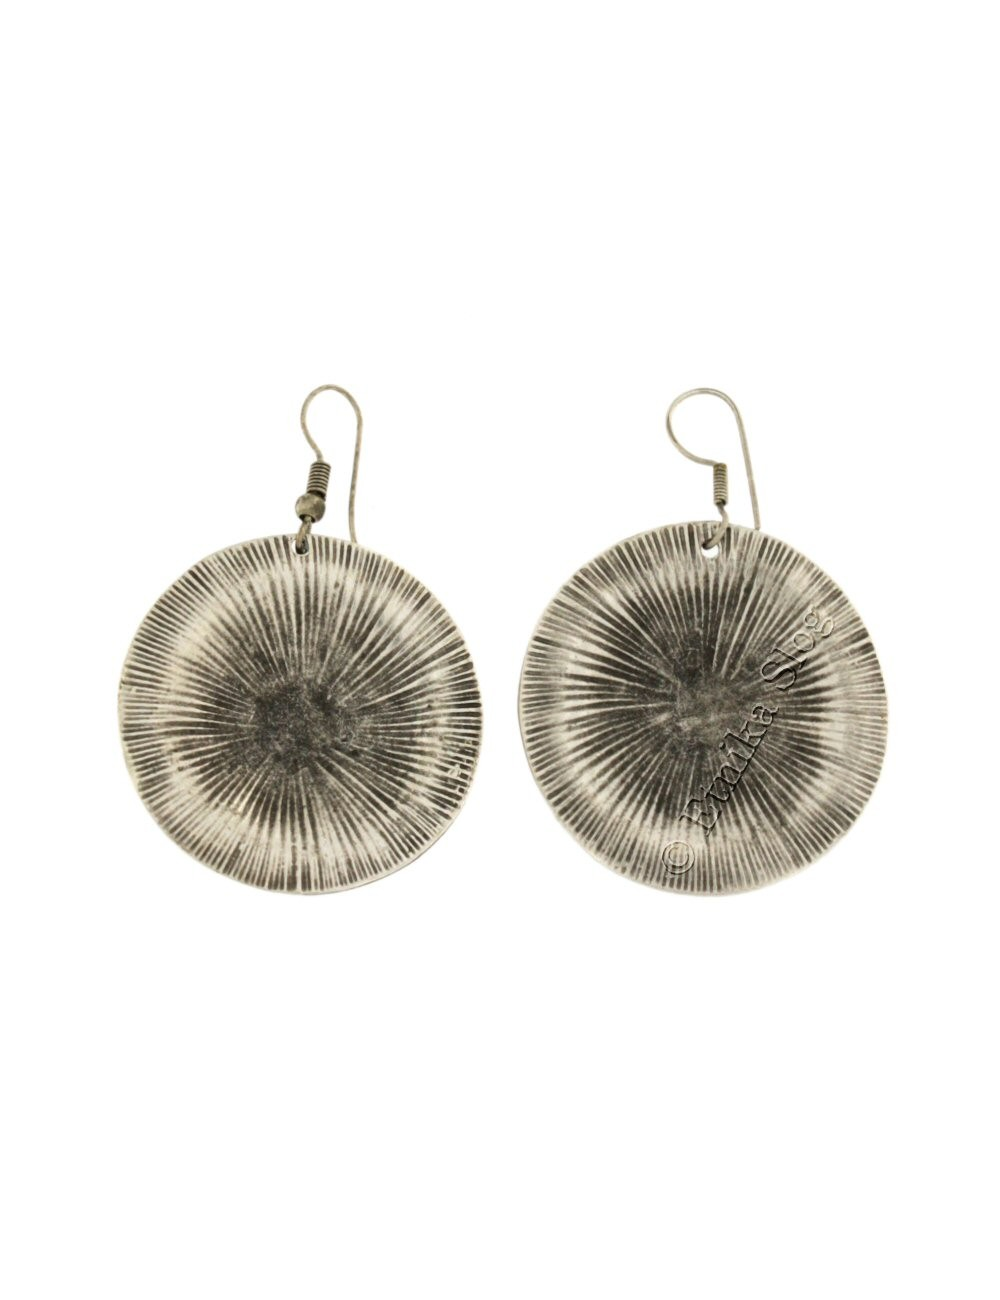 EARRINGS - METAL OR-ZA01-08 - Etnika Slog d.o.o.